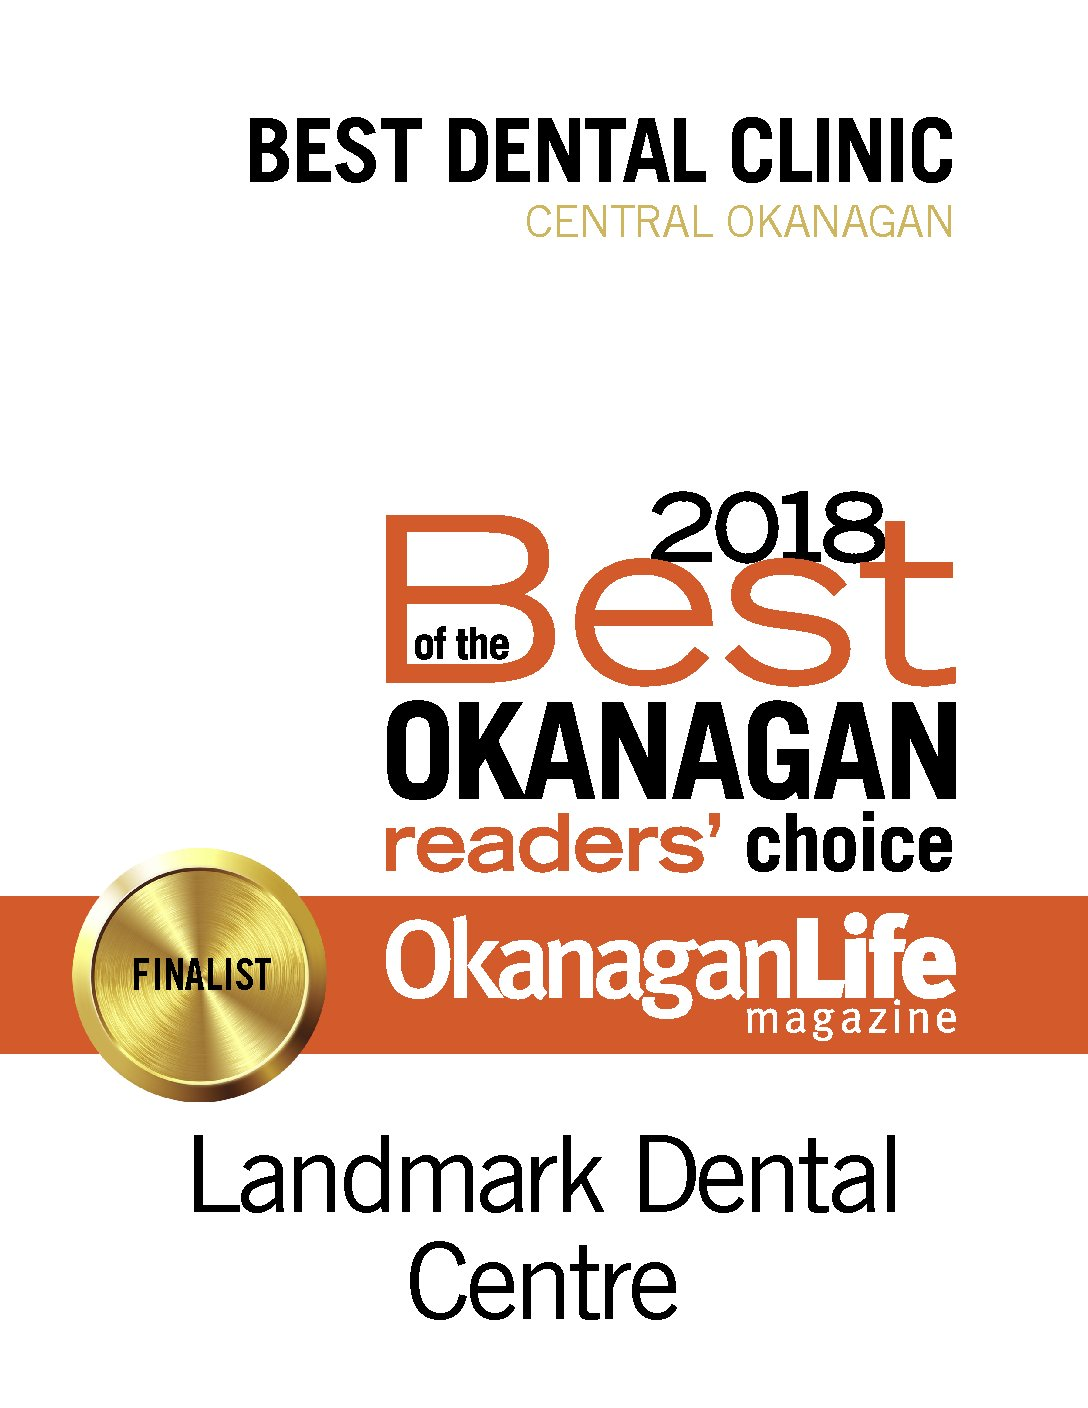 Landmark Dental Centre